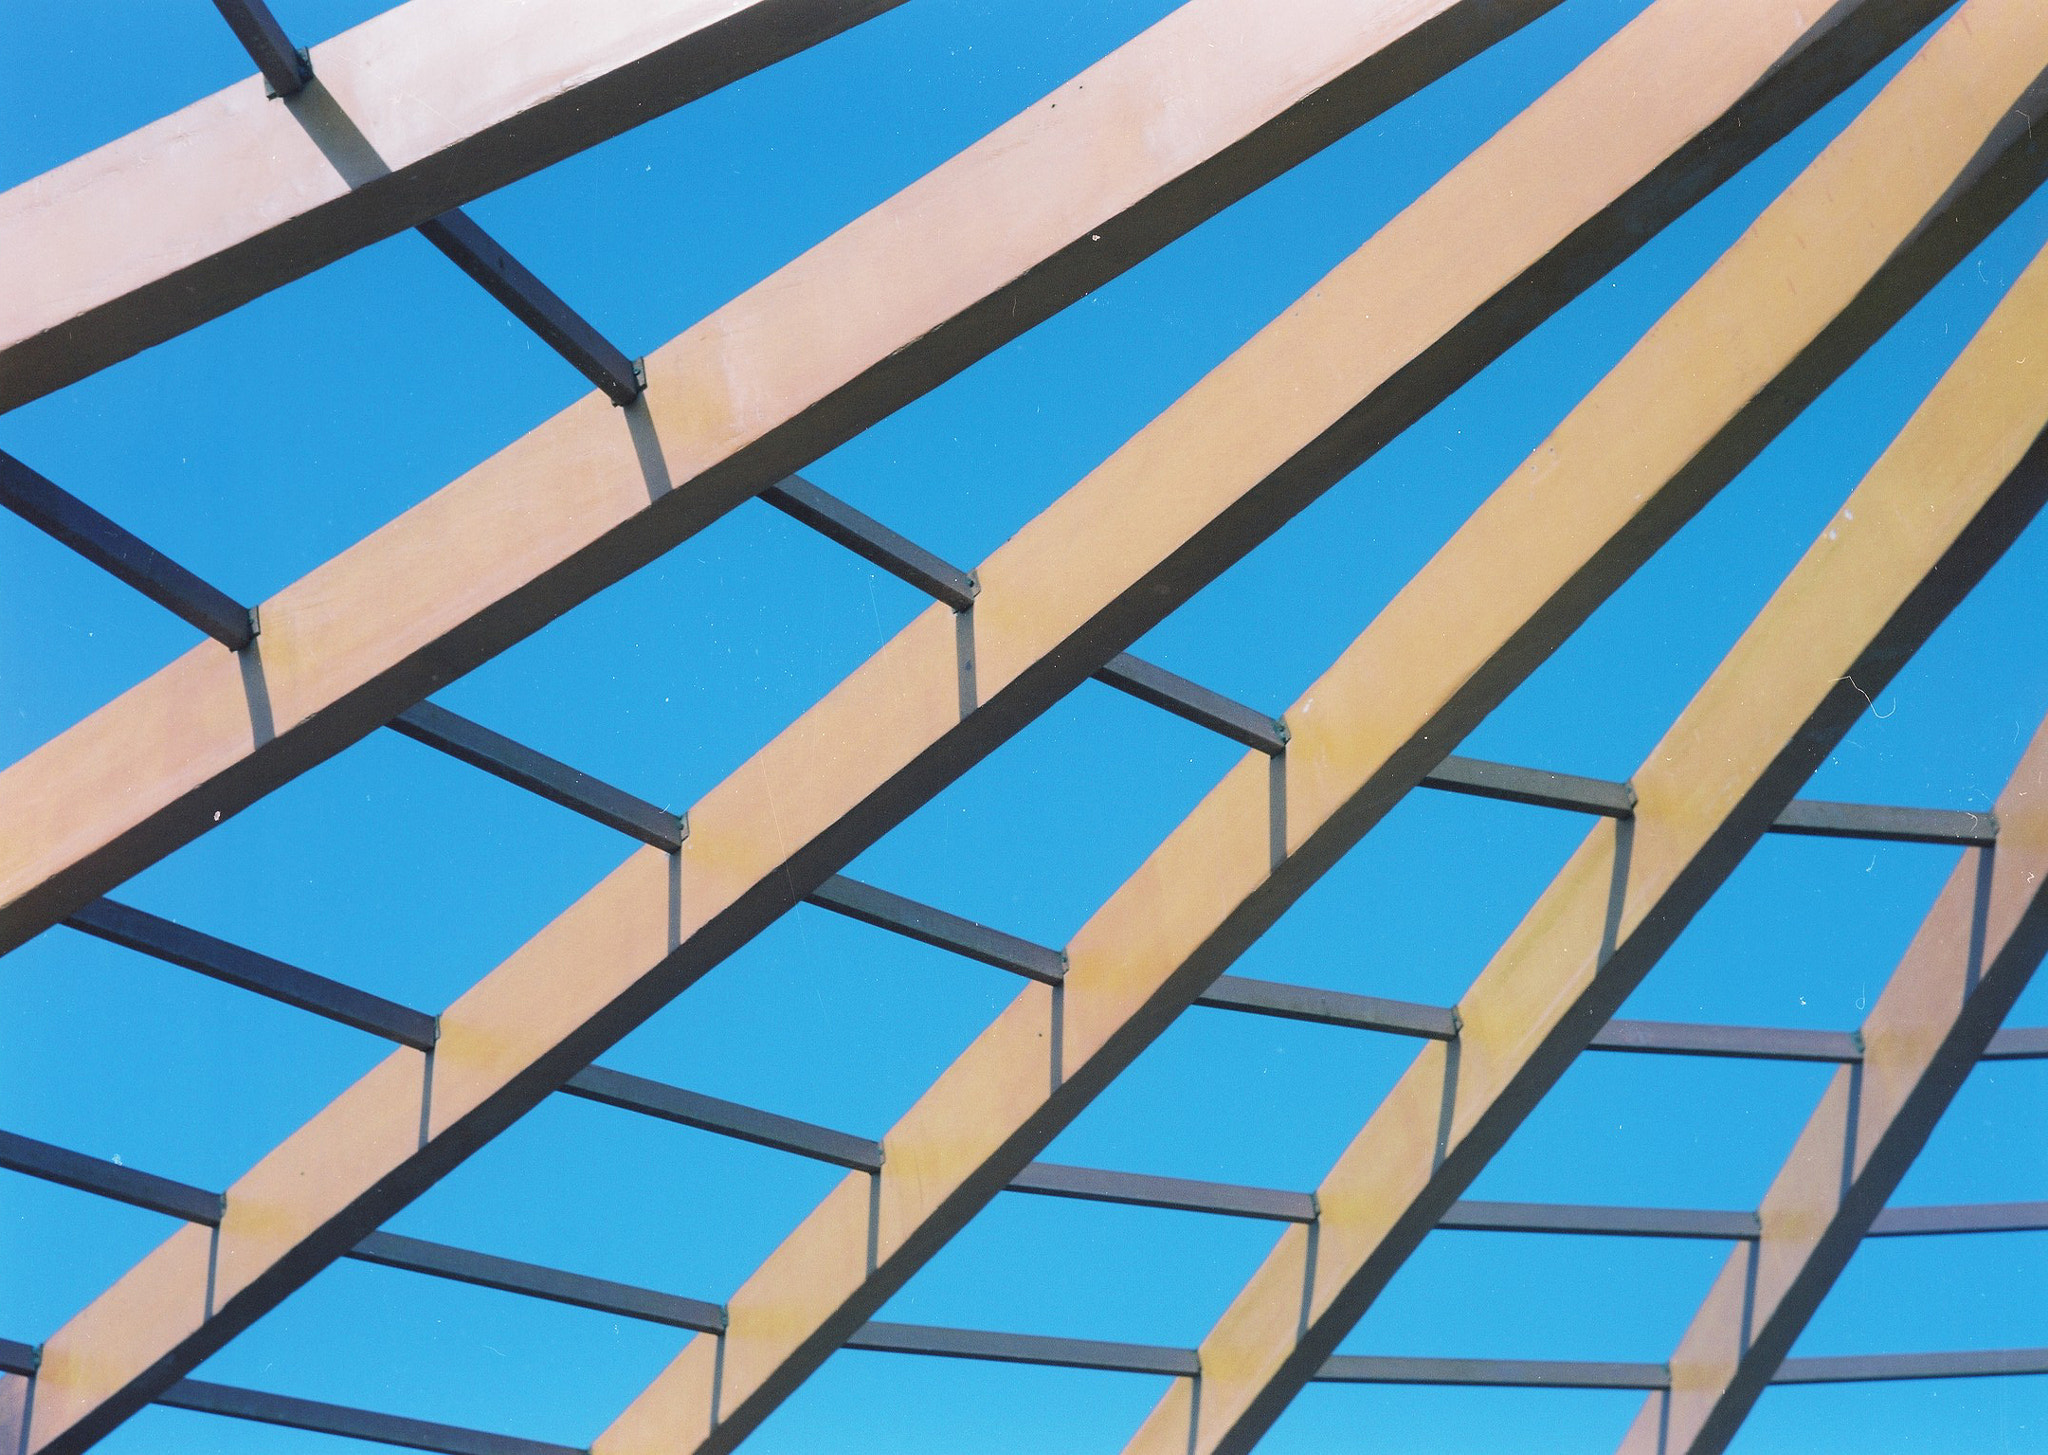 Photograph Architectural Abstract by Altaf AlAli on 500px